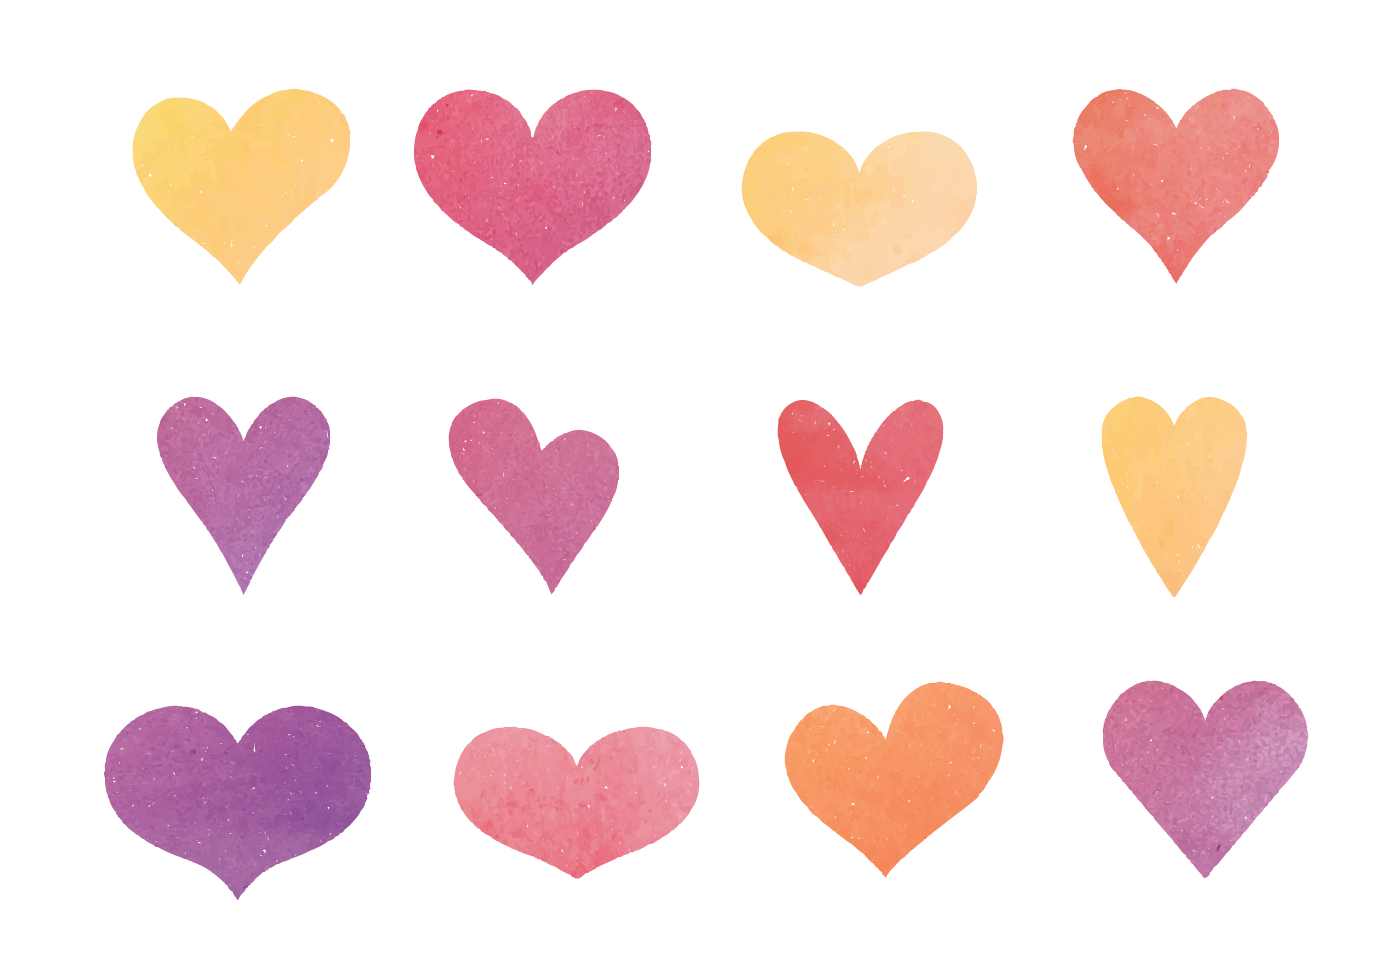 1400x980 Cute Hearts Free Vector Art